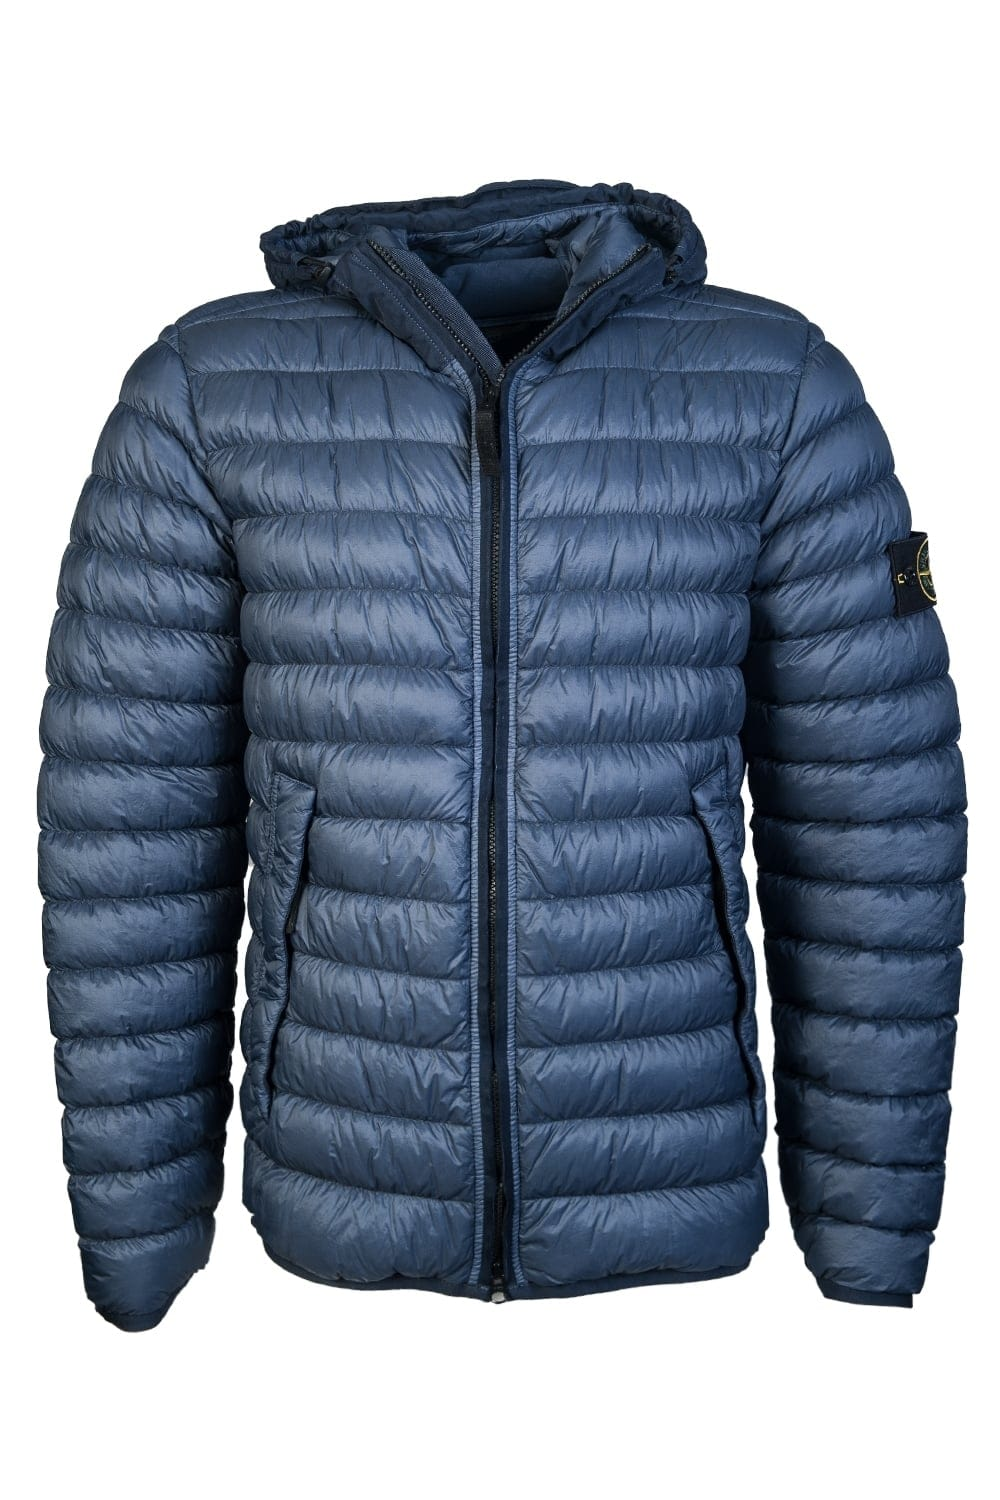 stone island puffer jacket 651543824 clothing from sage clothing uk. Black Bedroom Furniture Sets. Home Design Ideas